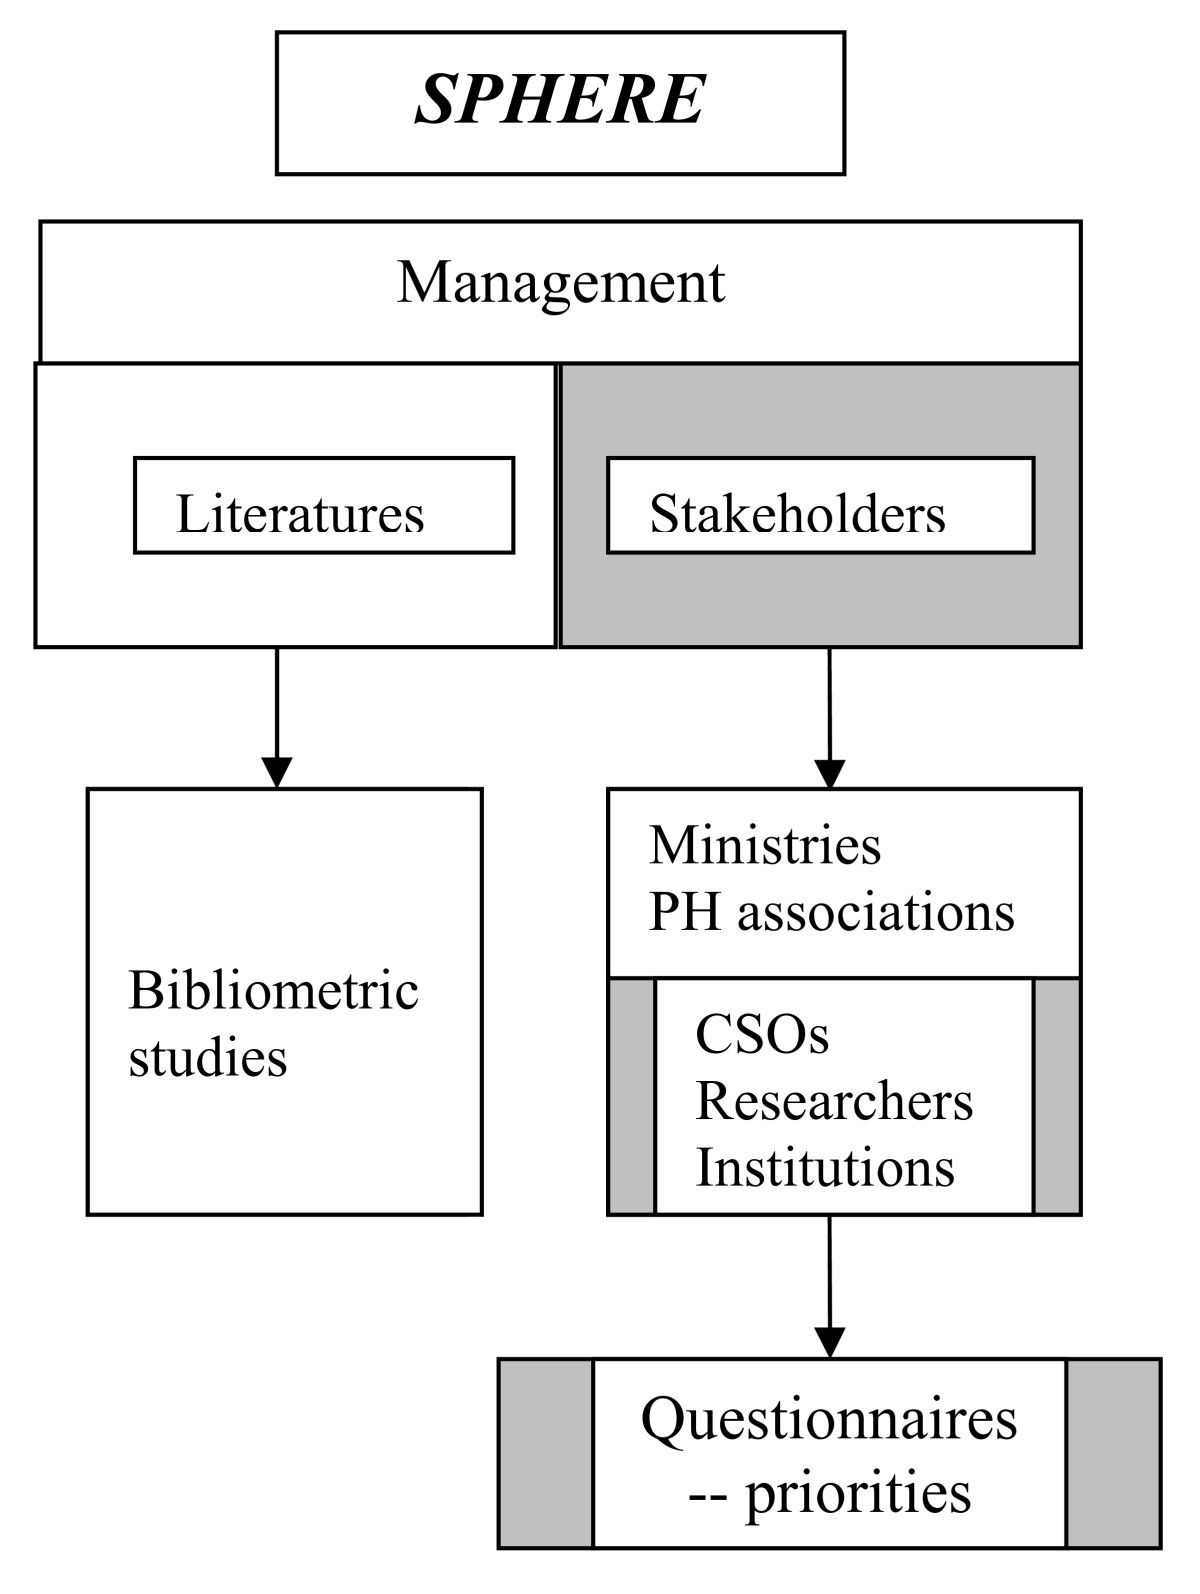 http://static-content.springer.com/image/art%3A10.1186%2F1478-4505-7-17/MediaObjects/12961_2008_Article_90_Fig1_HTML.jpg